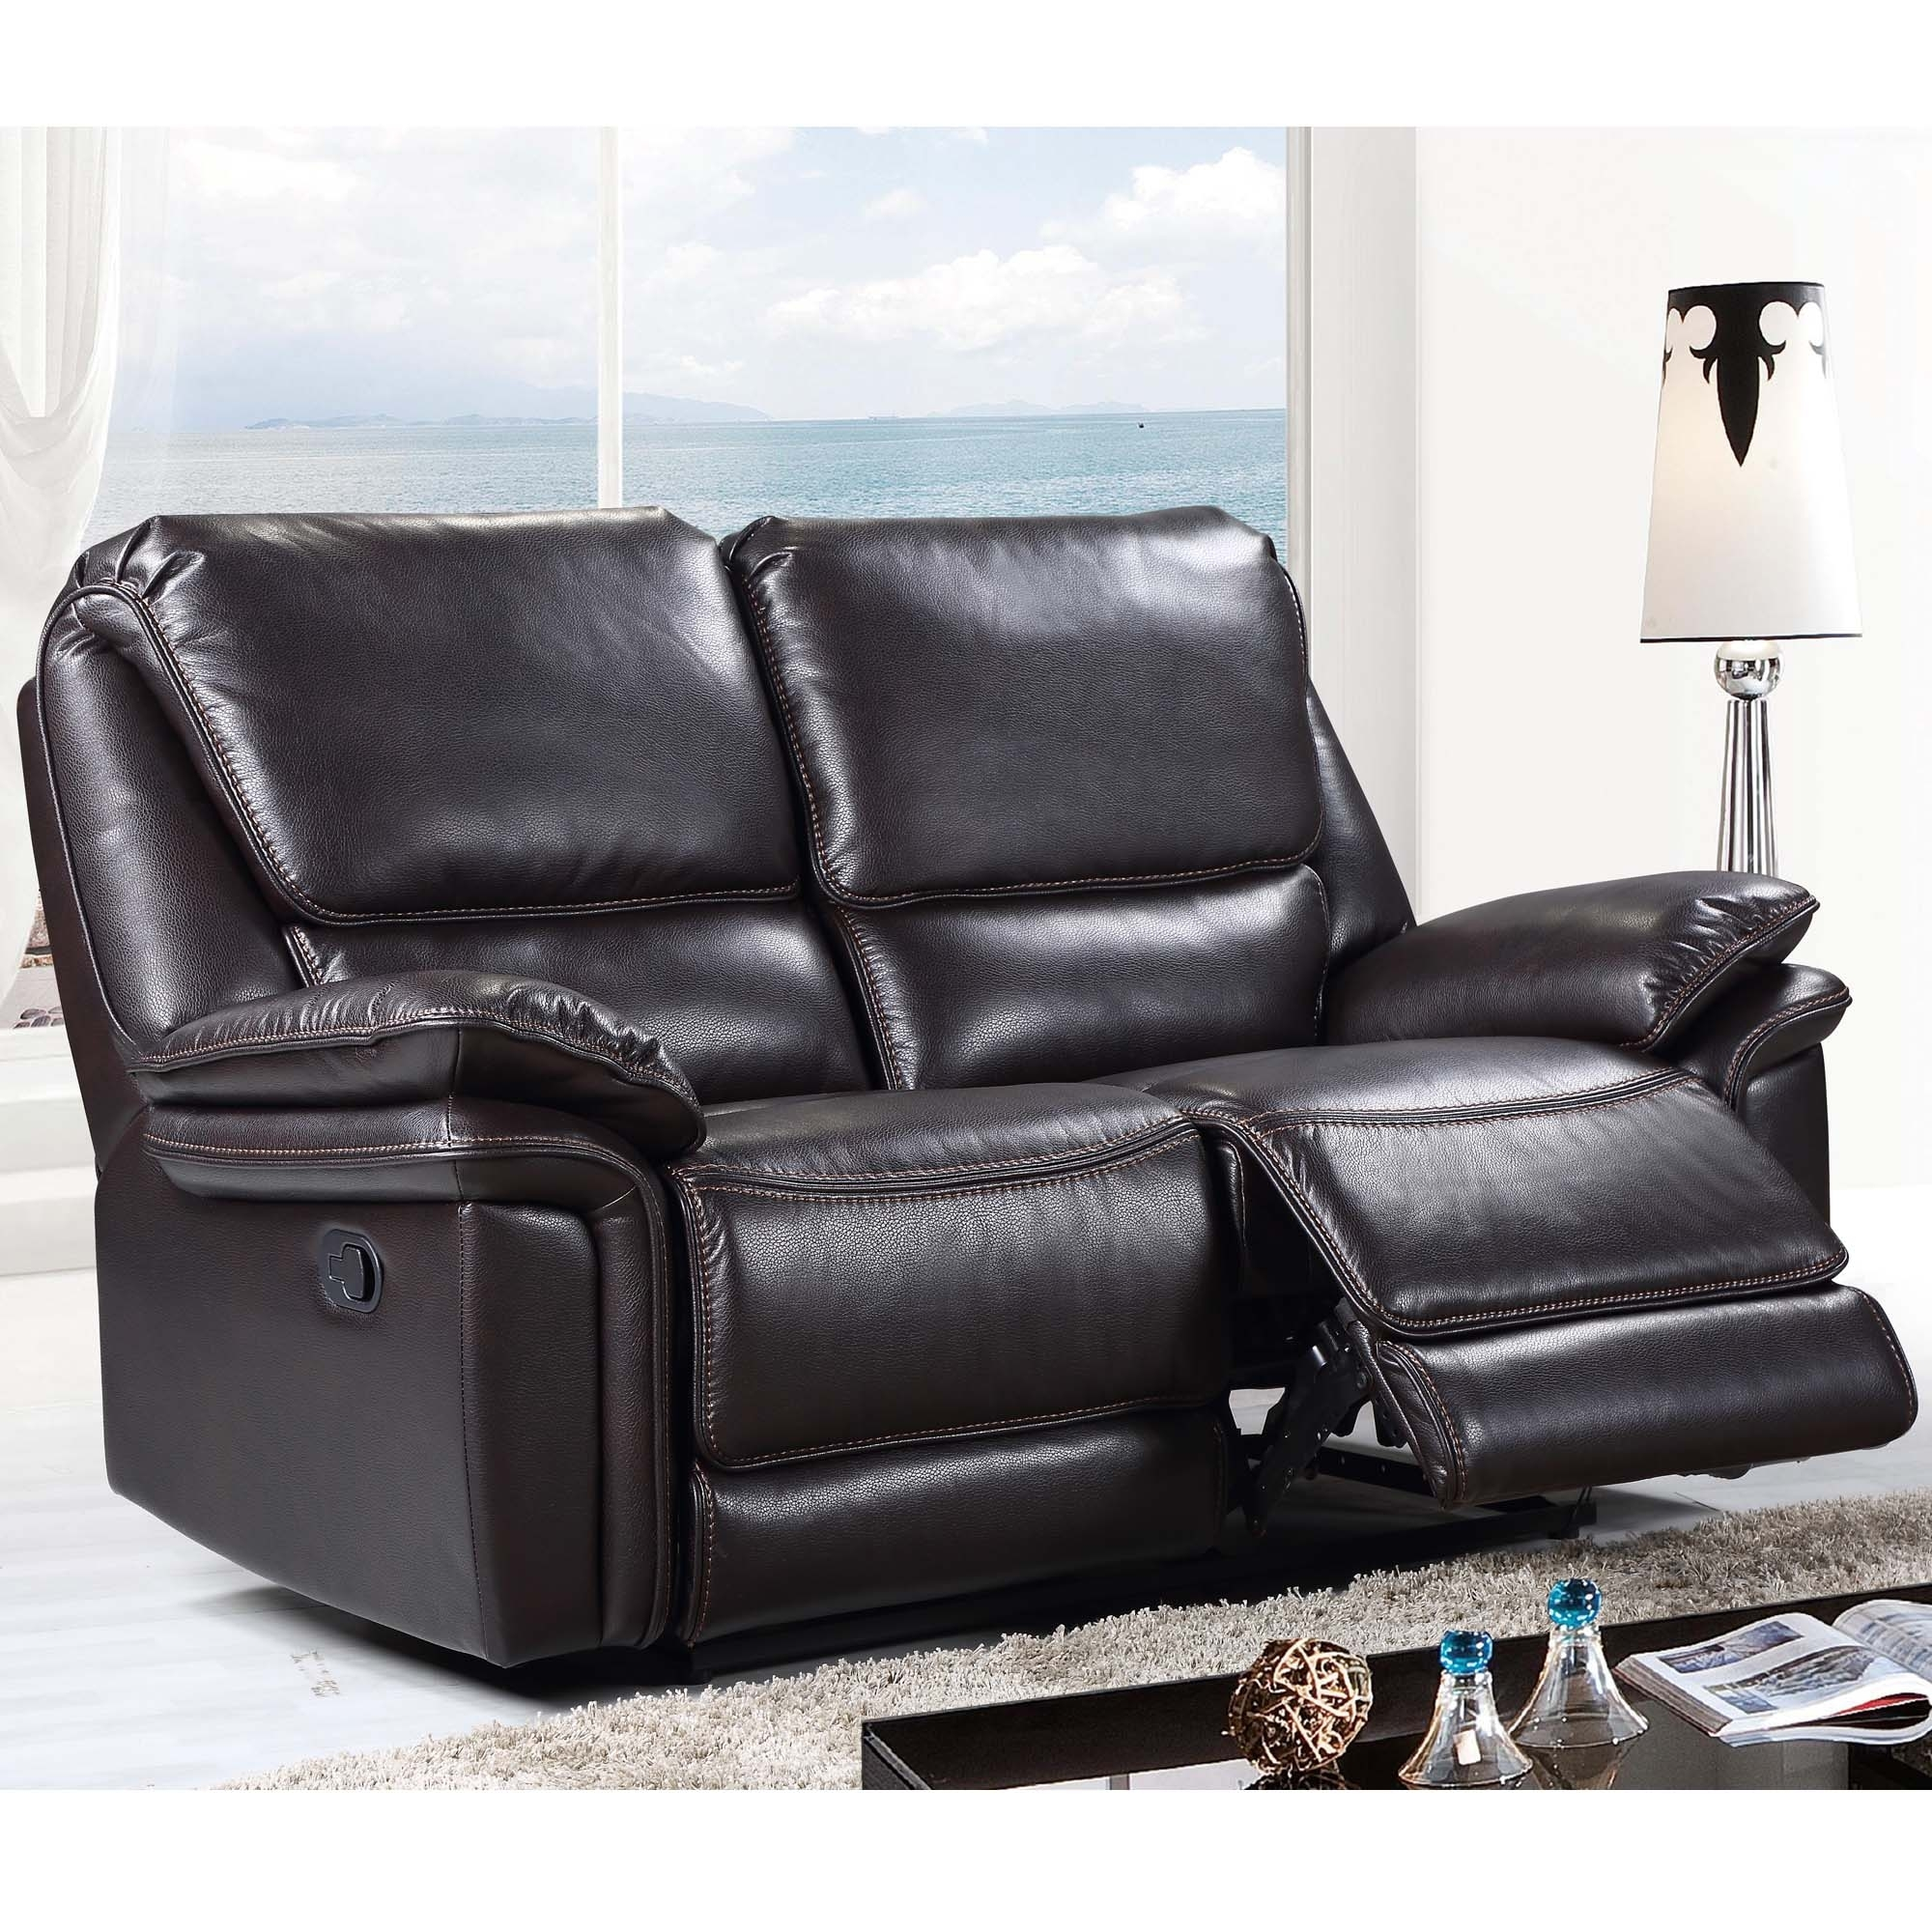 Sectional Sofa Sale Houston: Houston 2 Seater Recliner Sofa